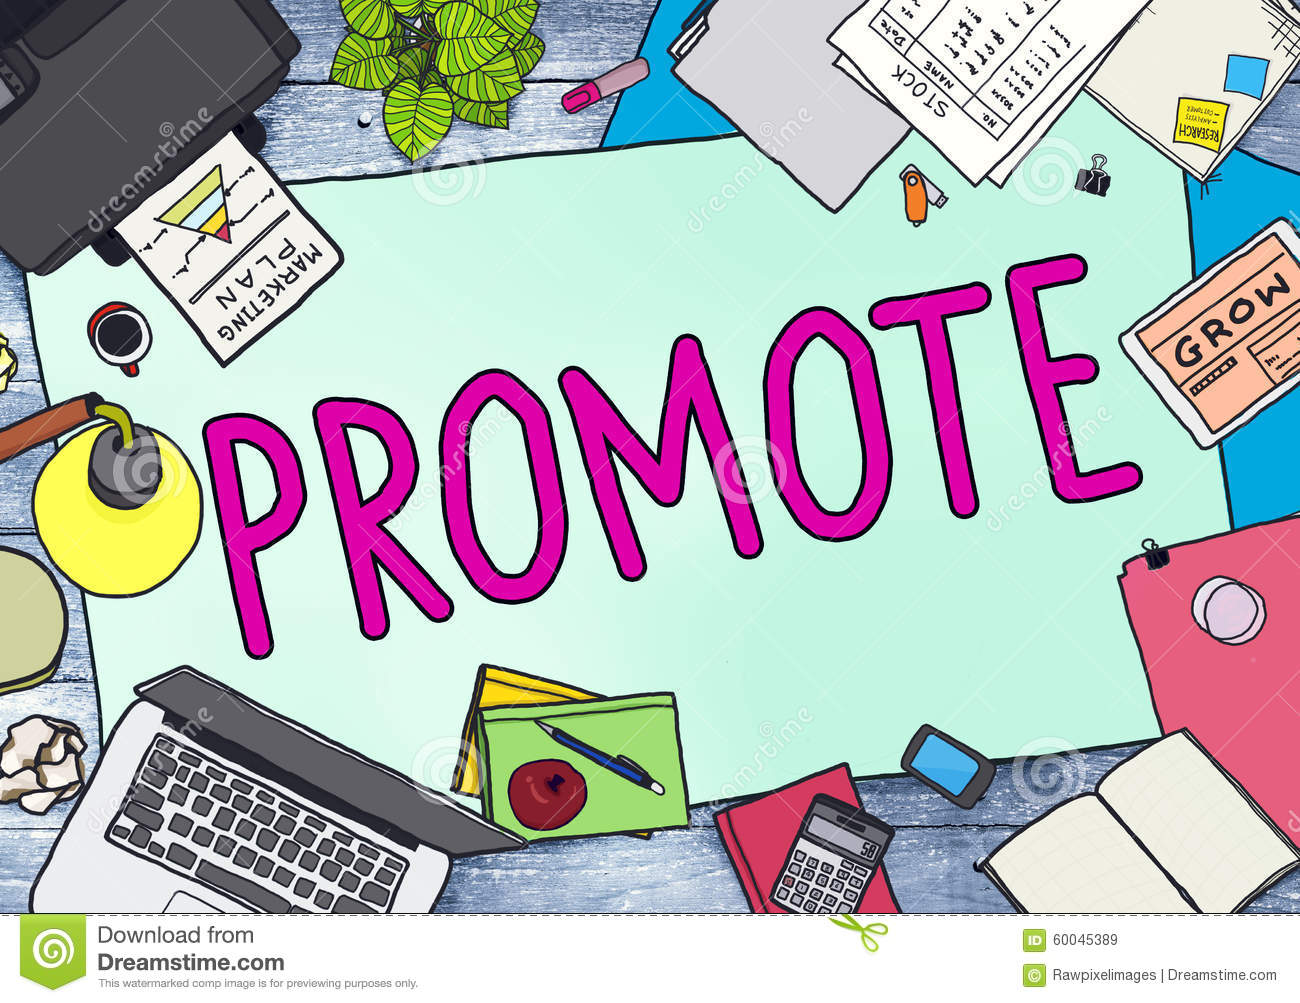 promotion of marketing Promotional marketing inc - lafayette hill, pa - promotional products, advertising specialties and business gifts shop our mall of products that can be imprinted.